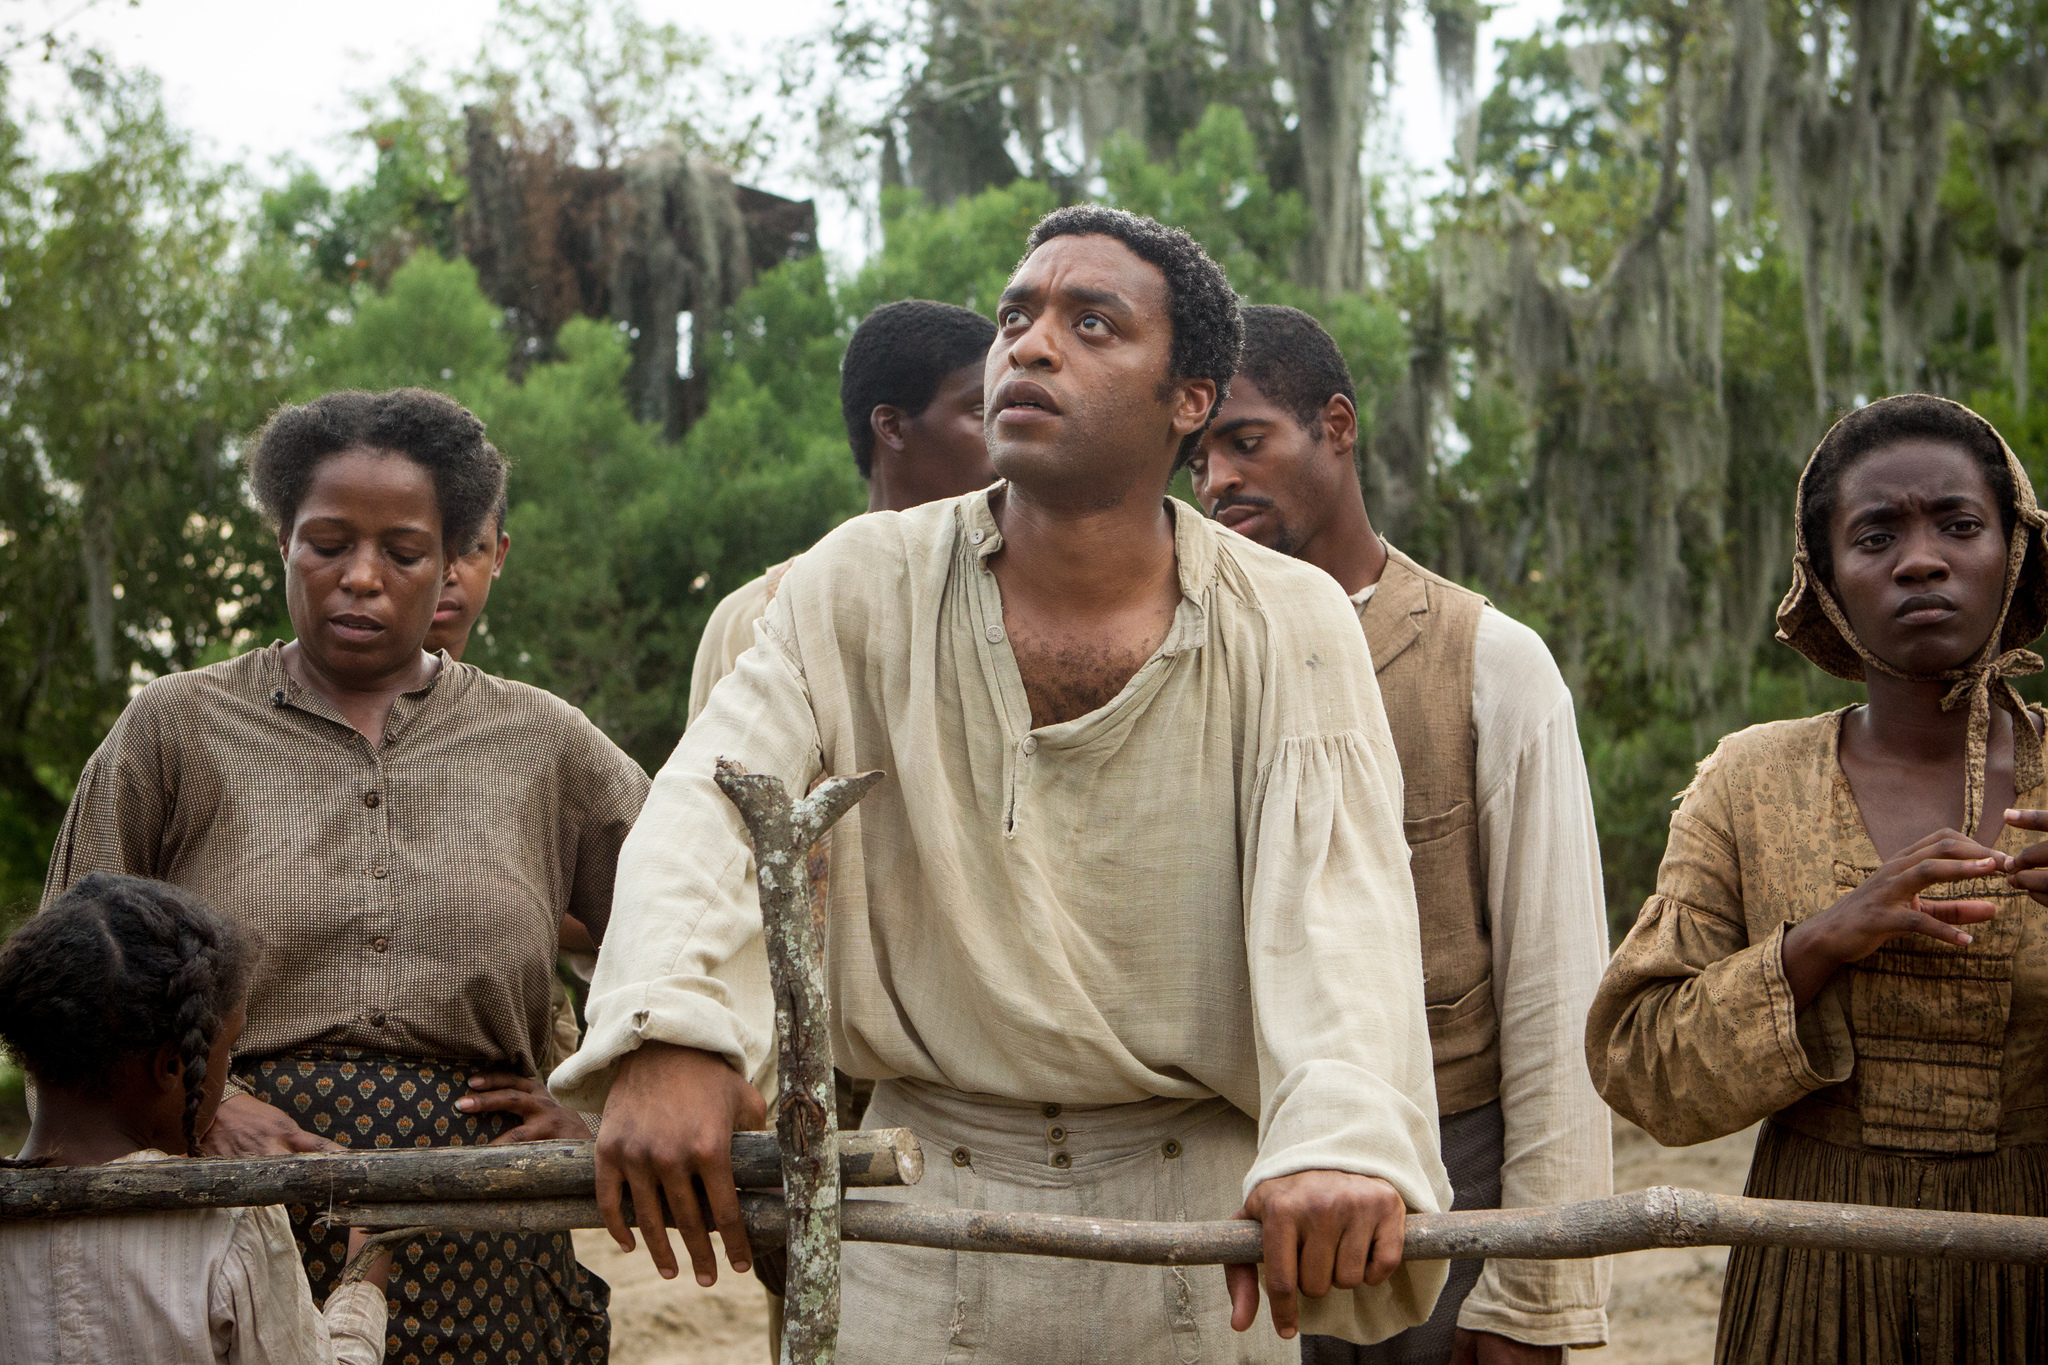 Review: 12 Years a Slave